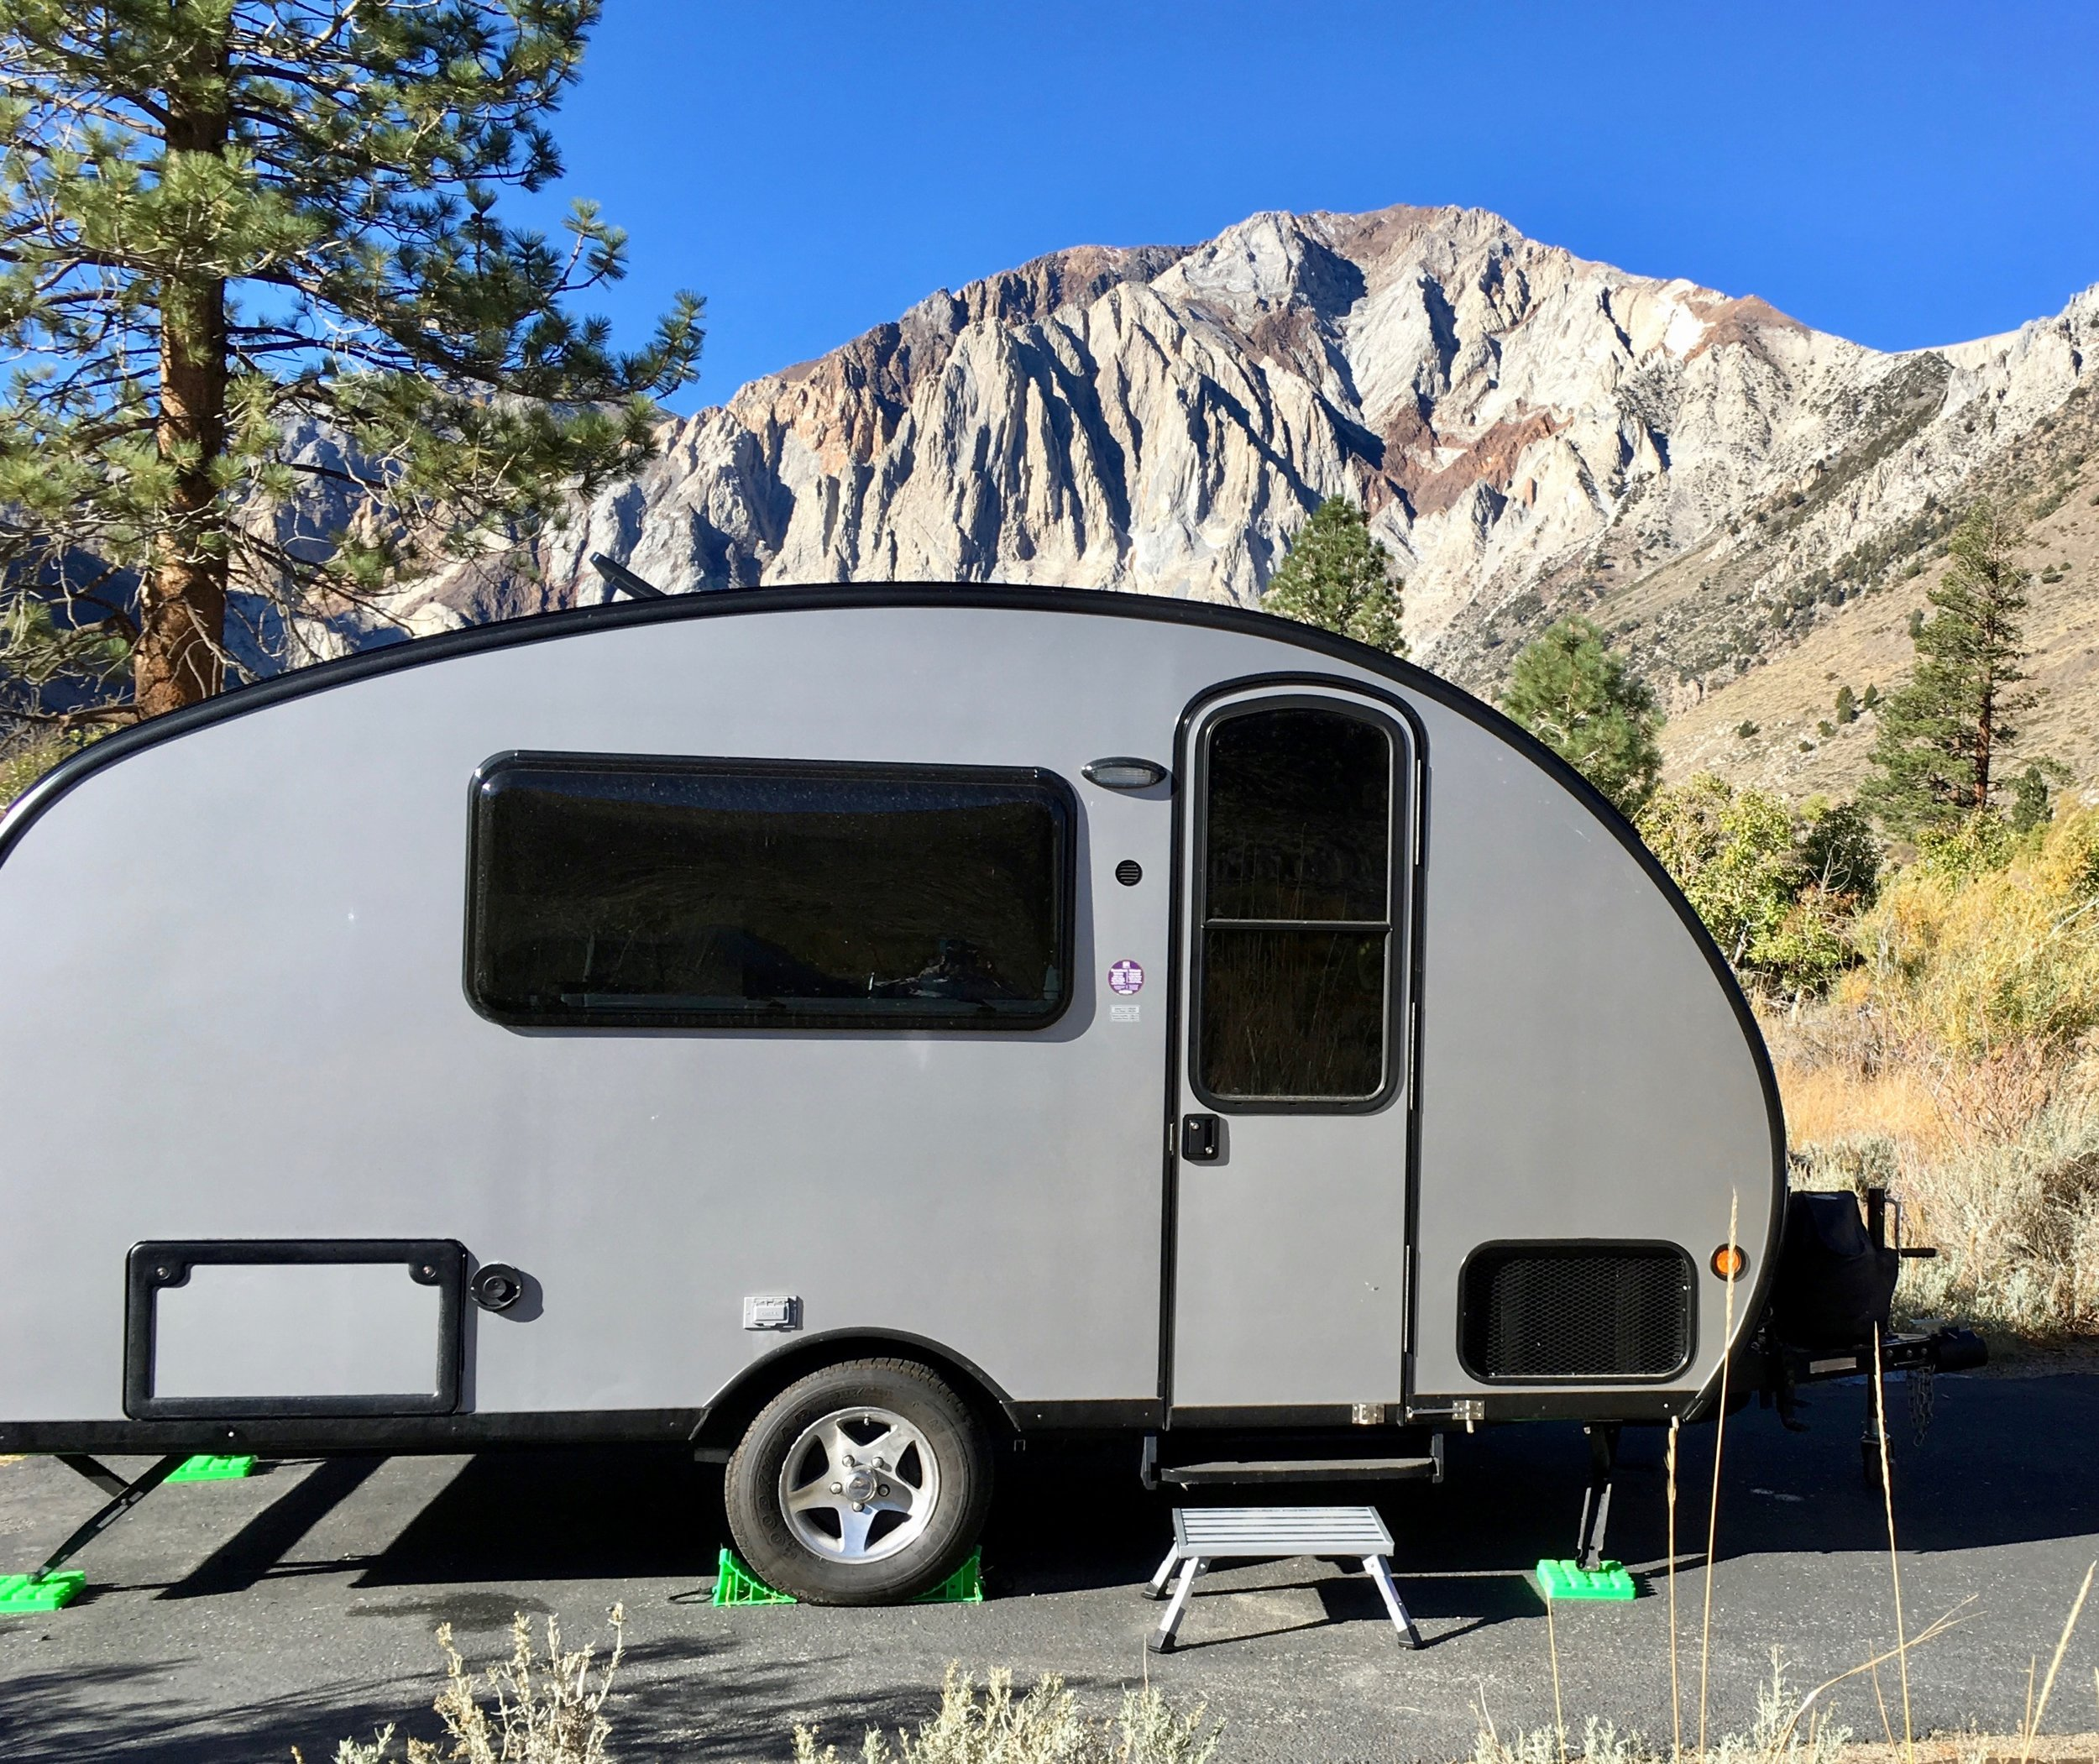 The Brave Little Toaster, our home base at Convict Lake.